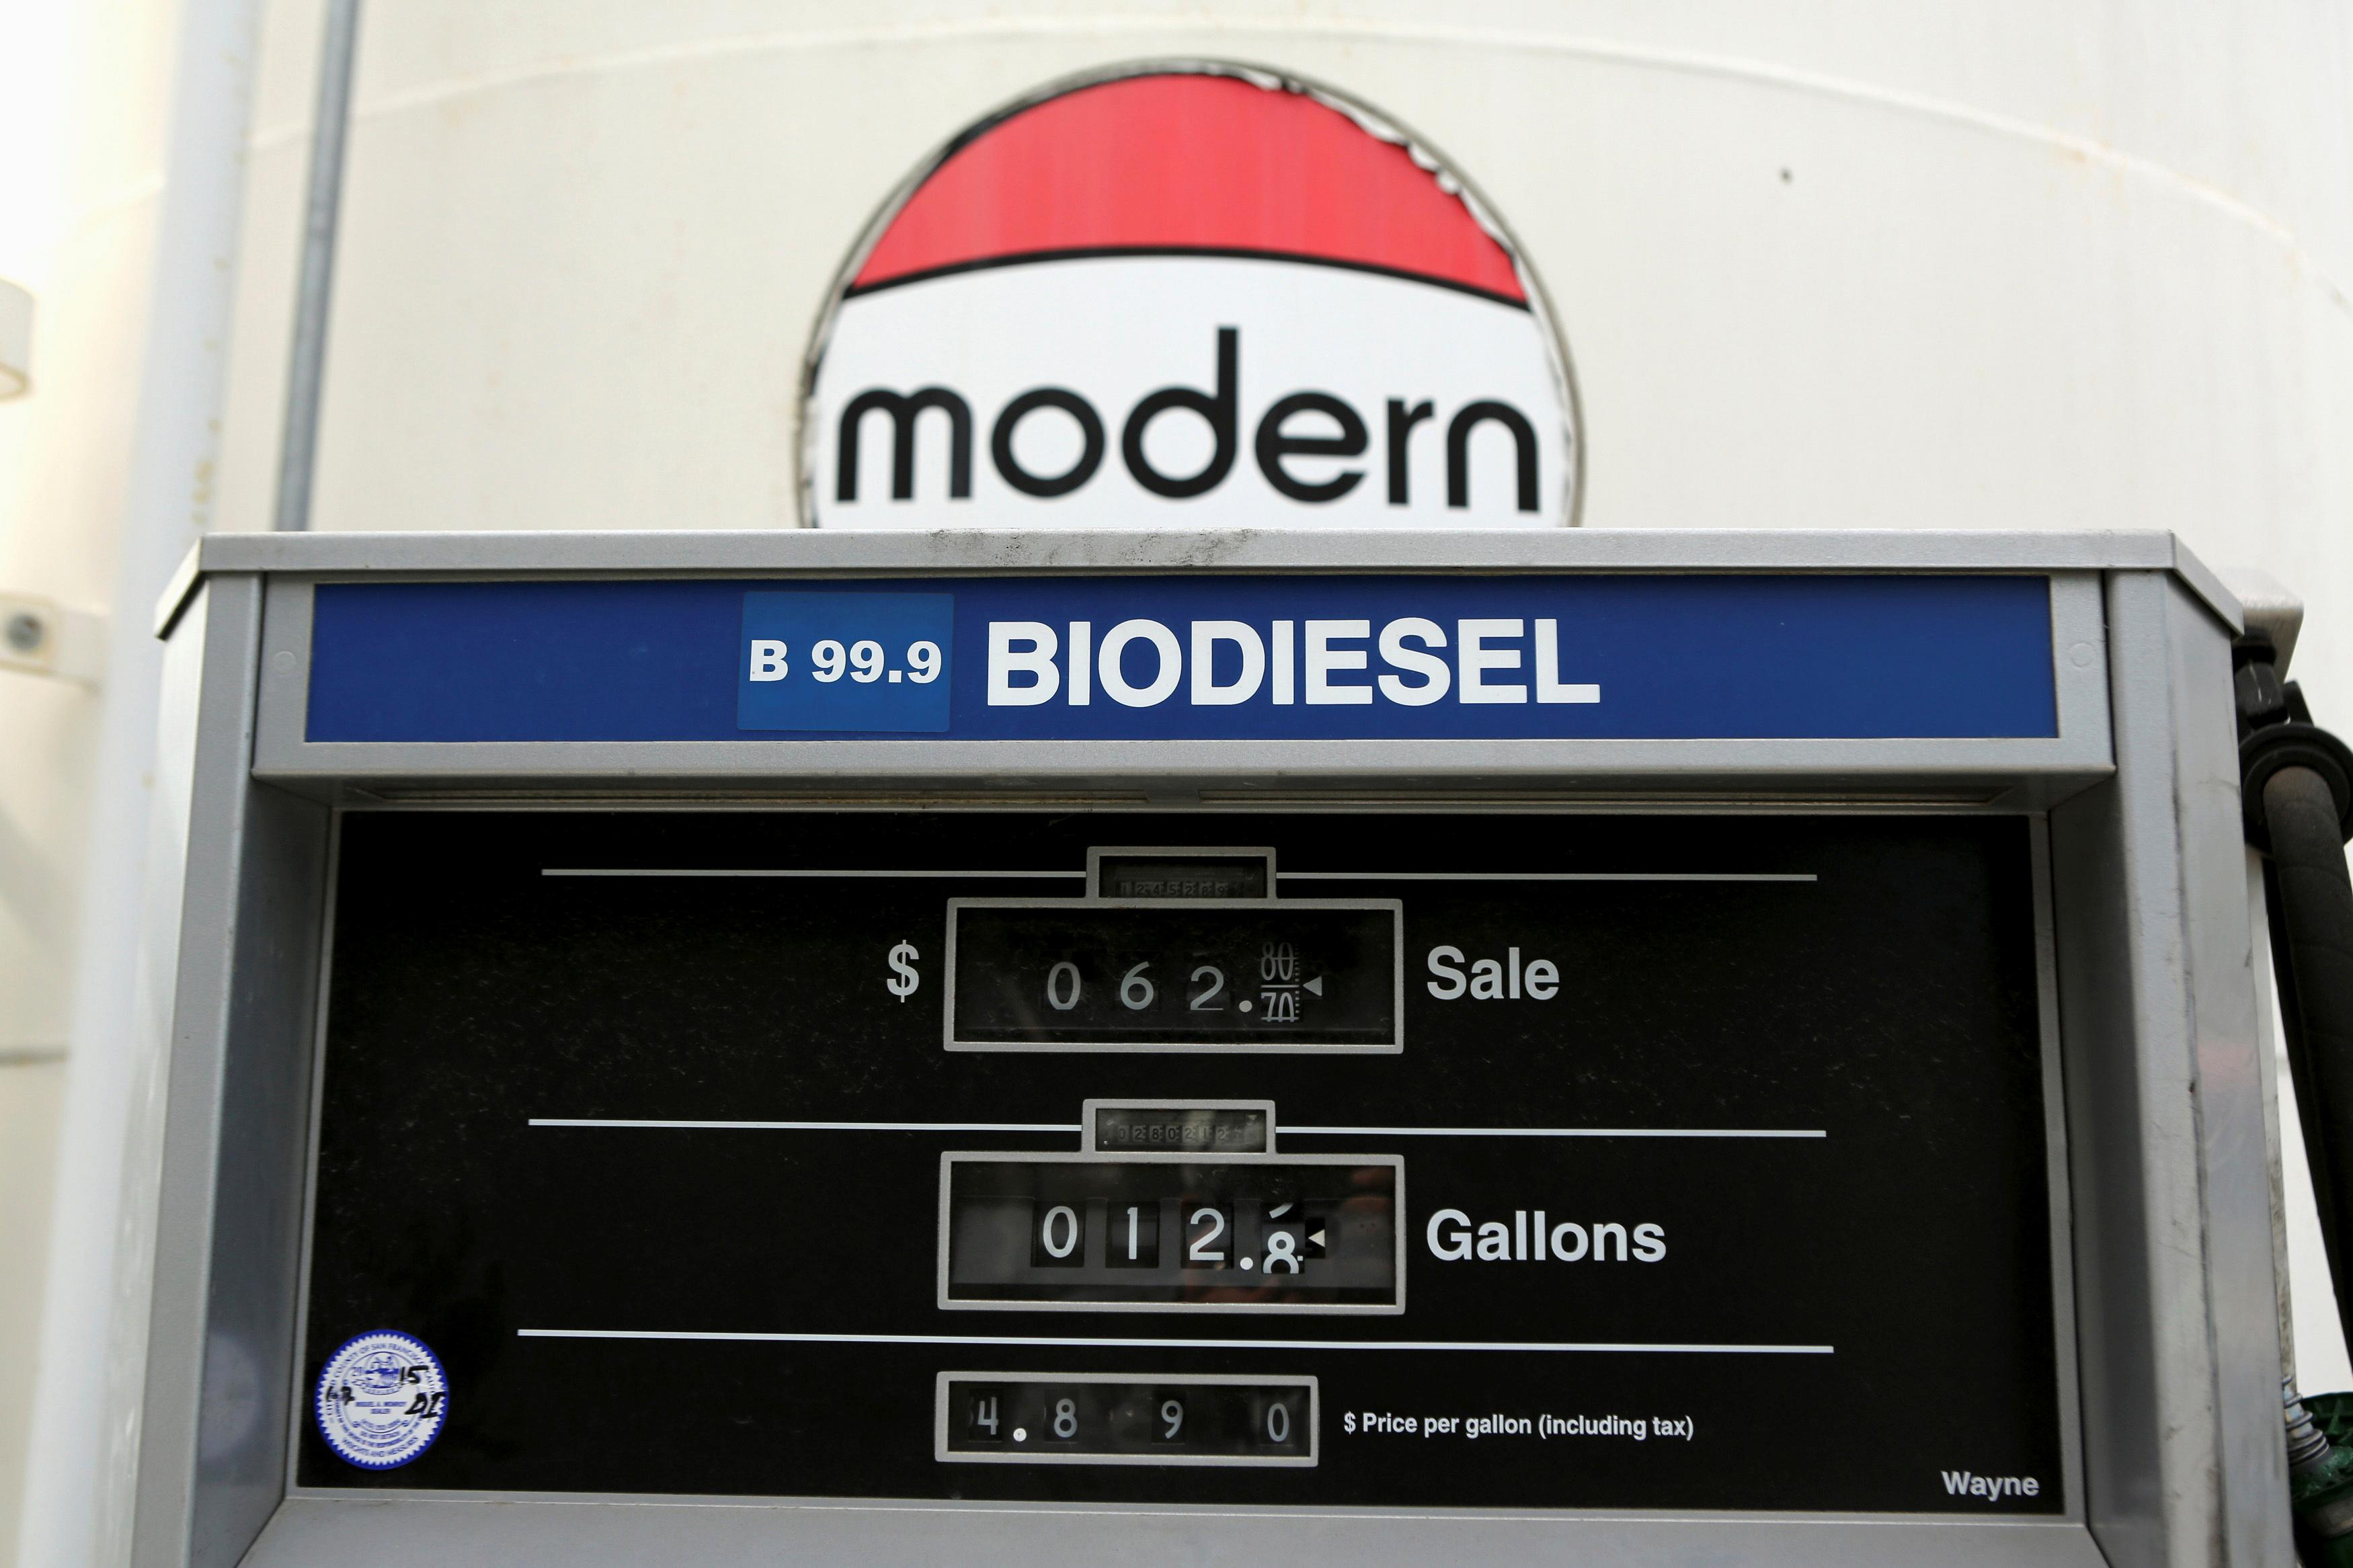 Trump administration close to finalizing biofuel deal: sources